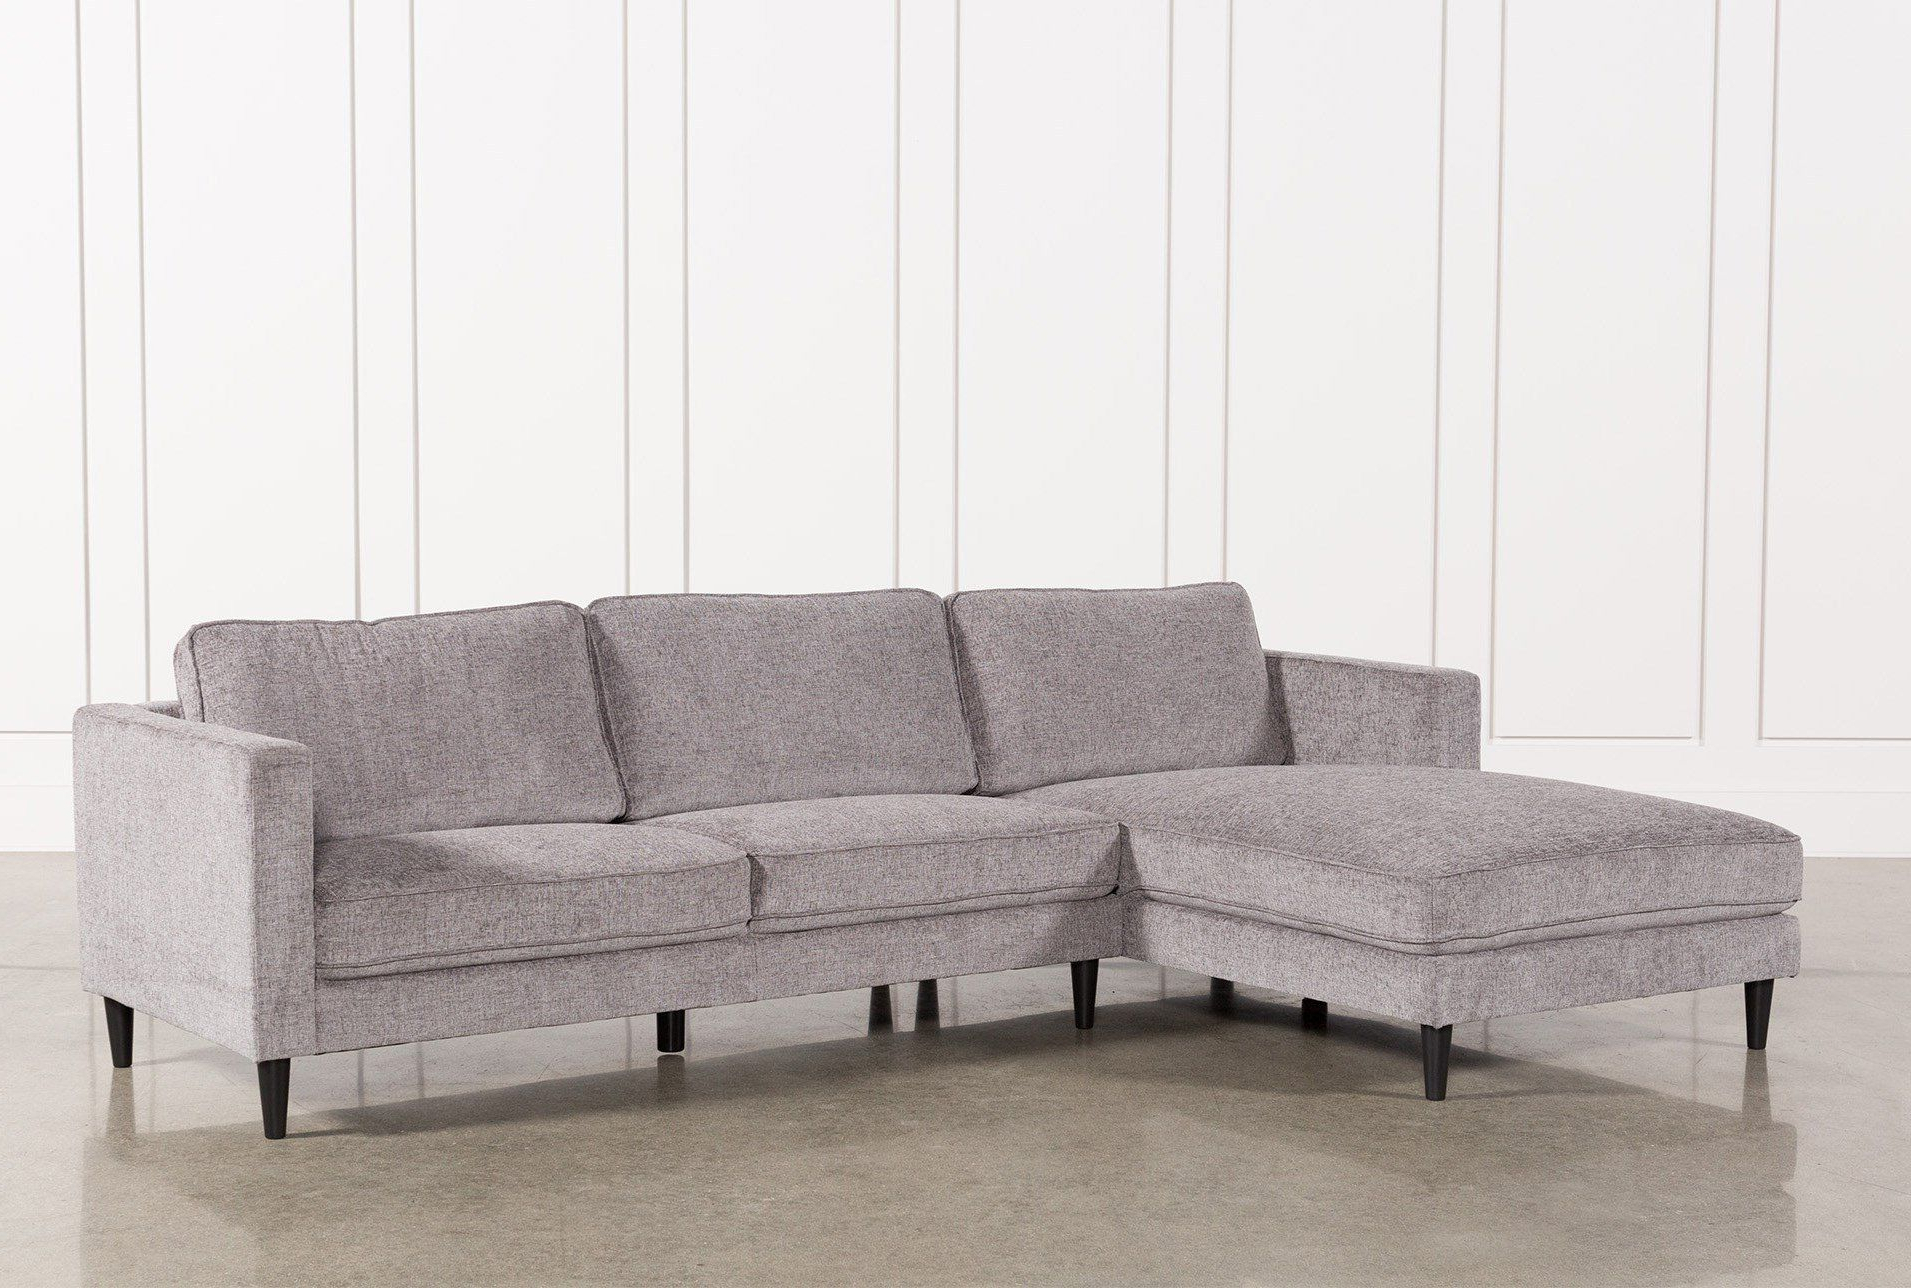 Pinterest In Recent Avery 2 Piece Sectionals With Laf Armless Chaise (Gallery 2 of 20)